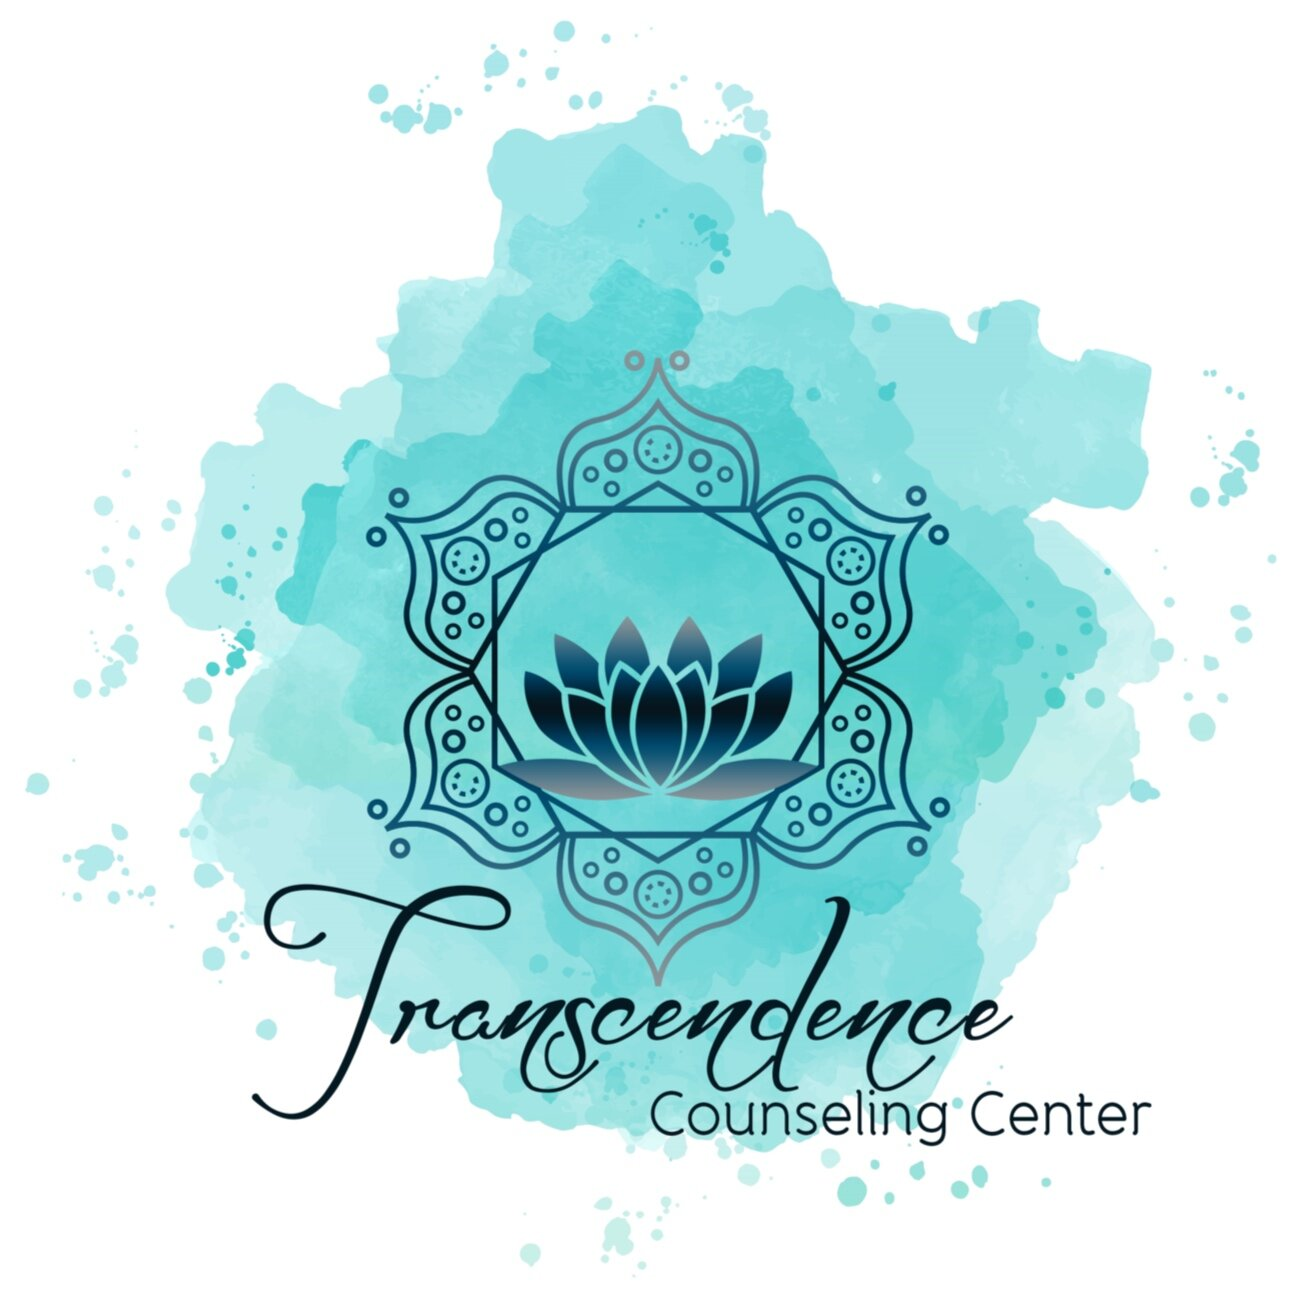 Transcendence Counseling Center LLC